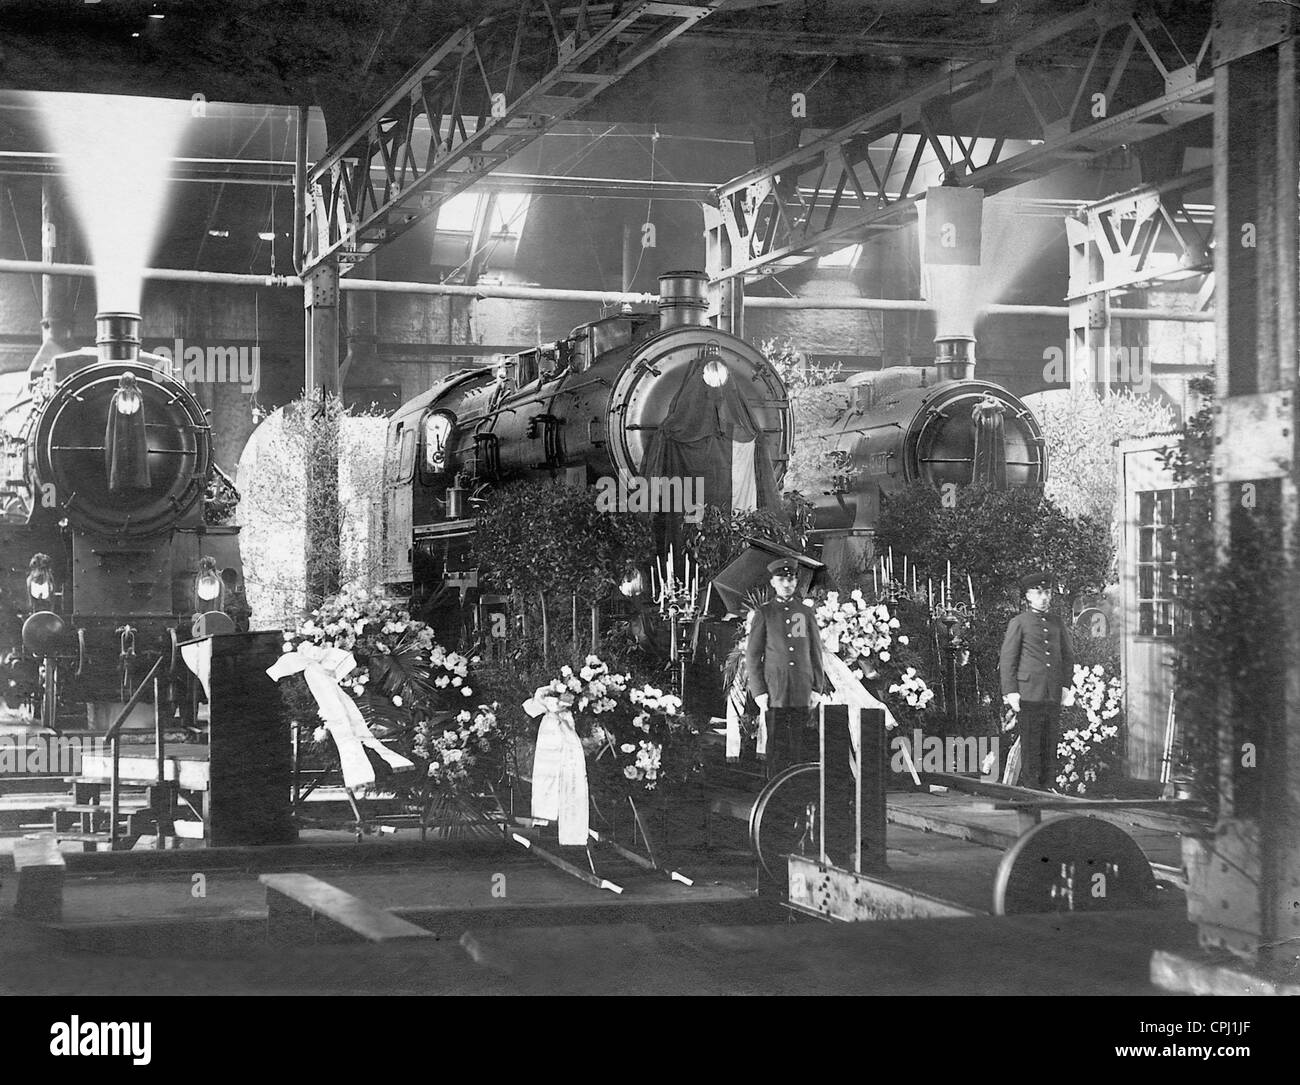 Engine Shed Black and White Stock Photos & Images - Alamy